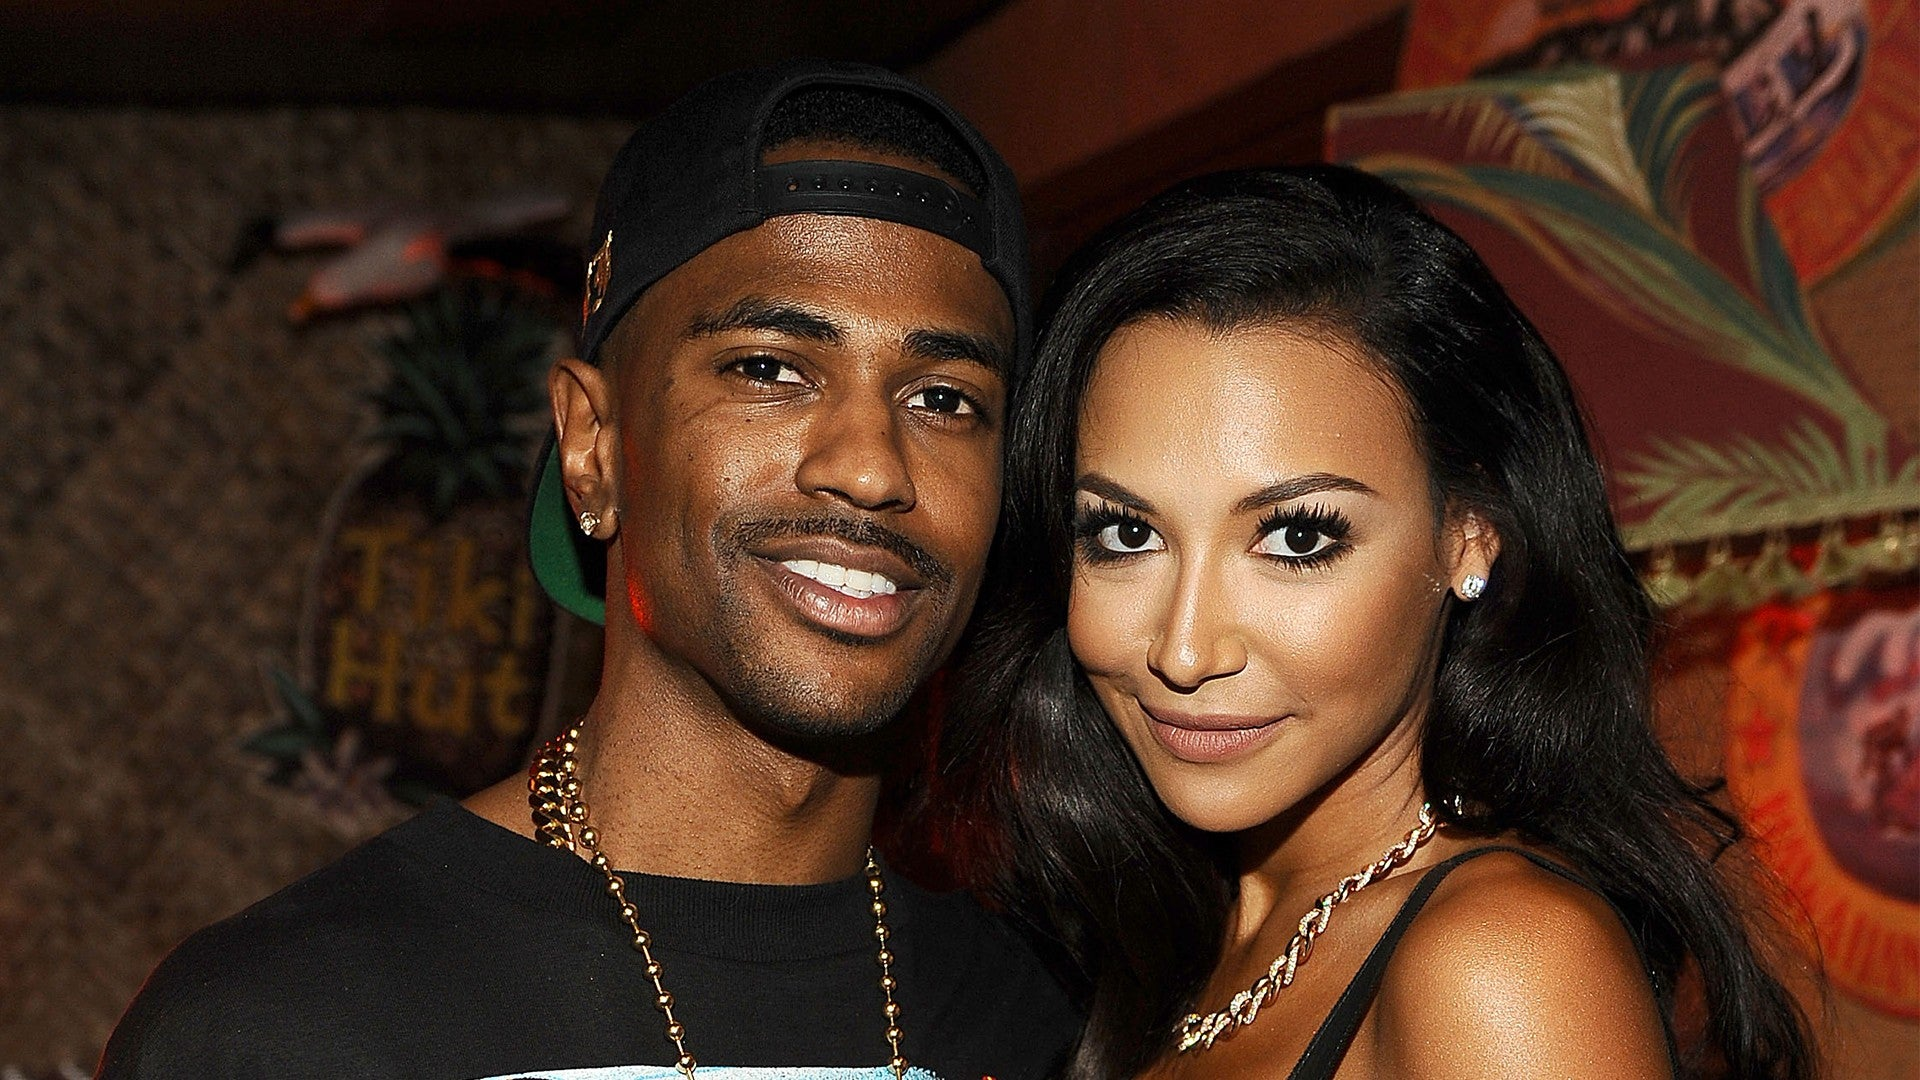 """""""big-sean-says-idfwu-is-not-a-diss-track-against-naya-rivera-2-months-after-her-death-insists-she-liked-it"""""""